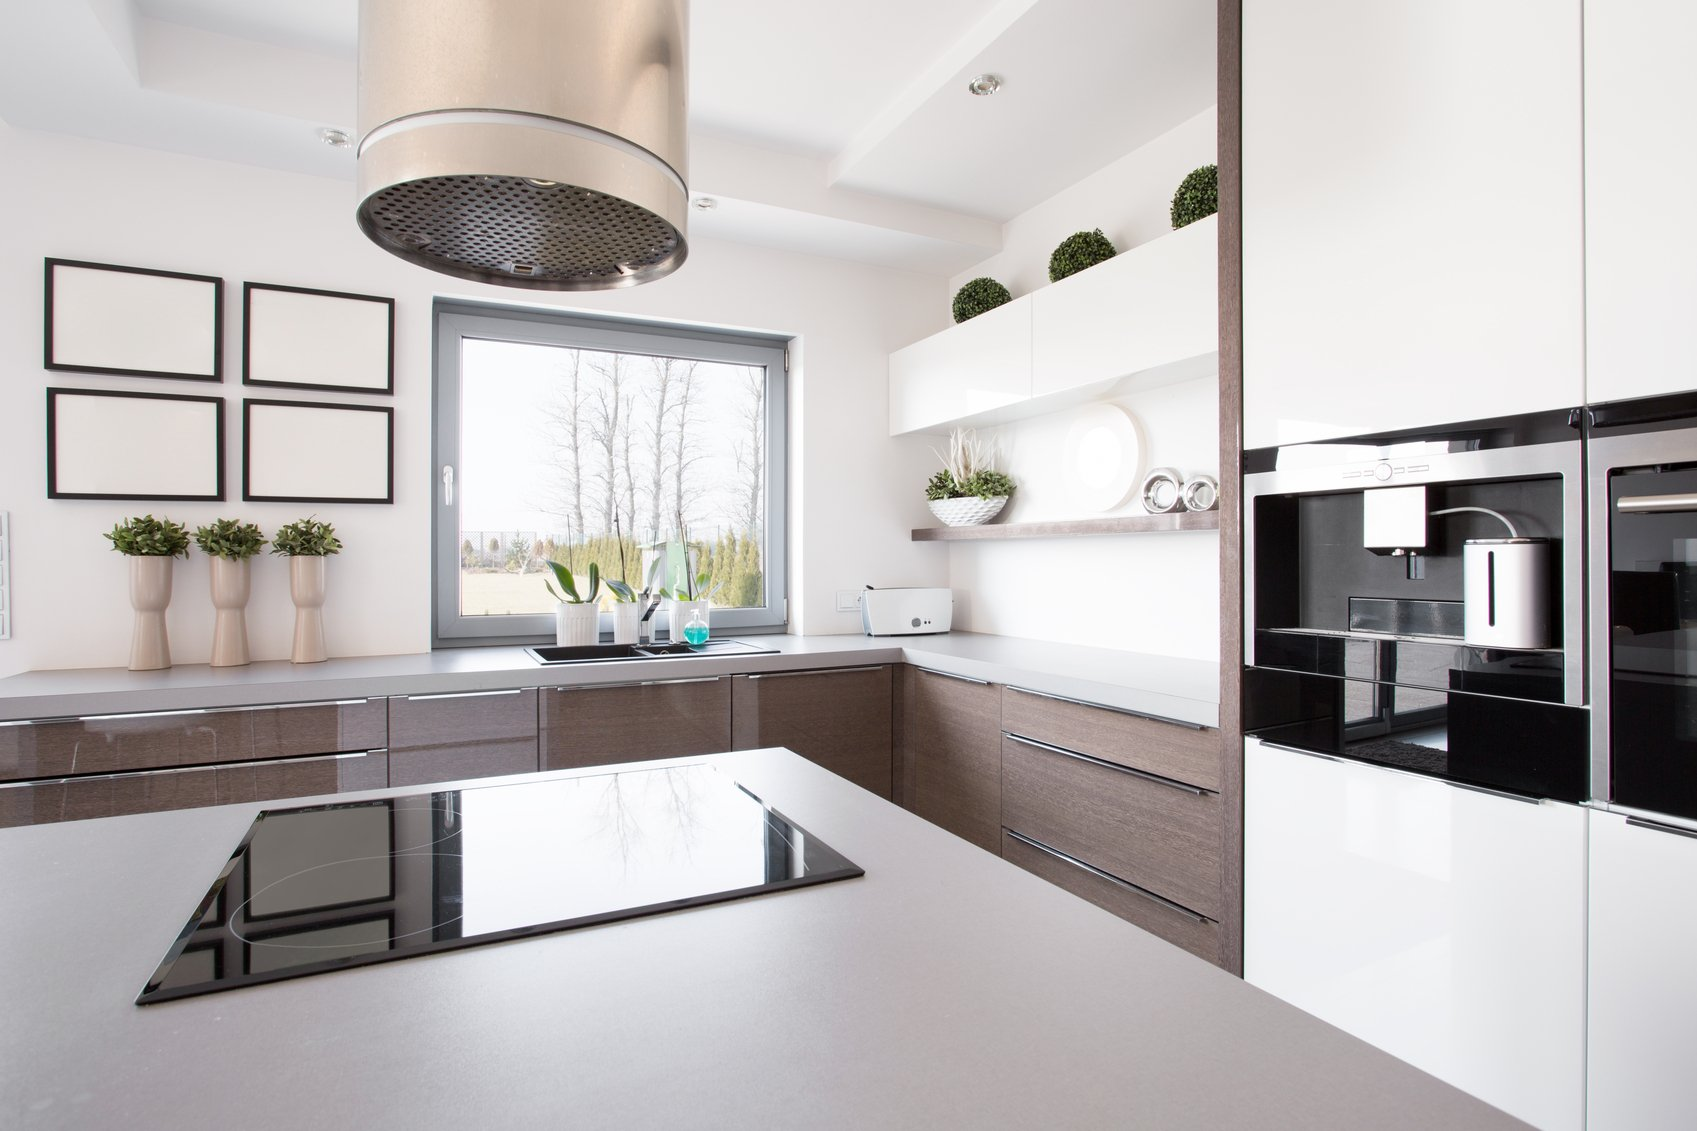 Discount kitchen cabinets erie pa - Specialty Countertops Stunning Results